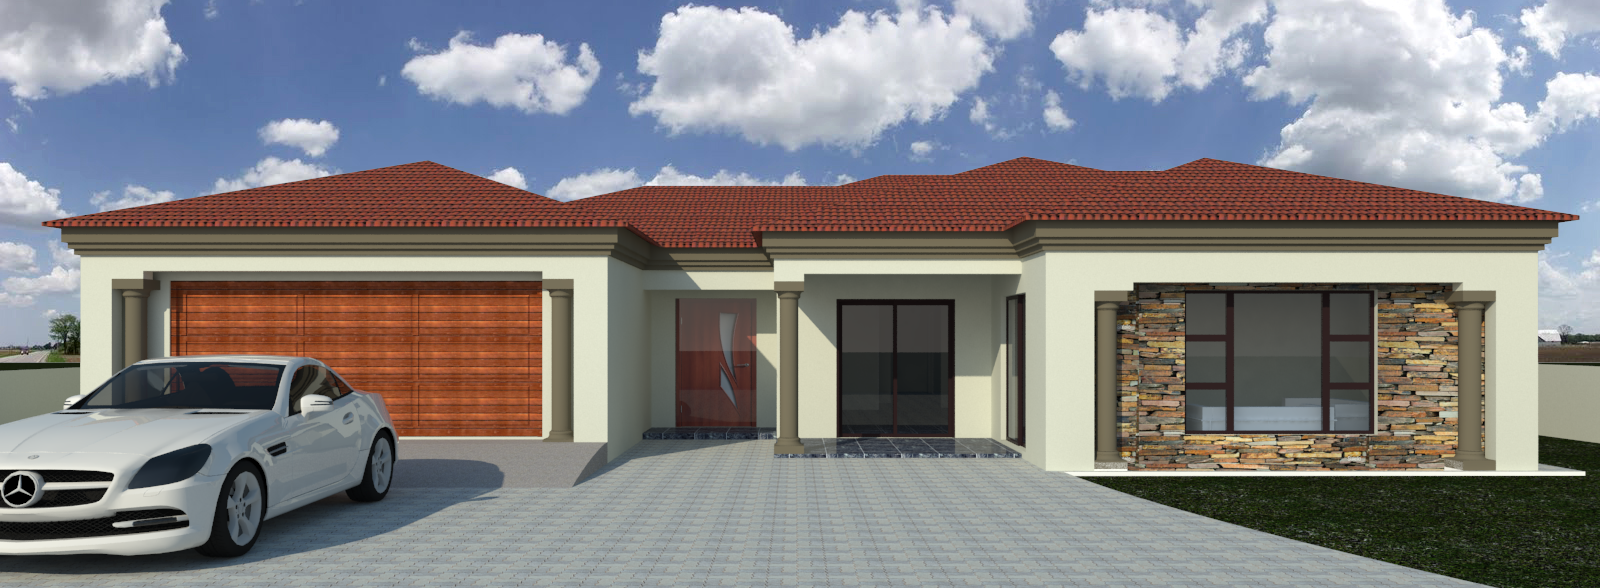 Simple Two Storey House Design With Rooftop